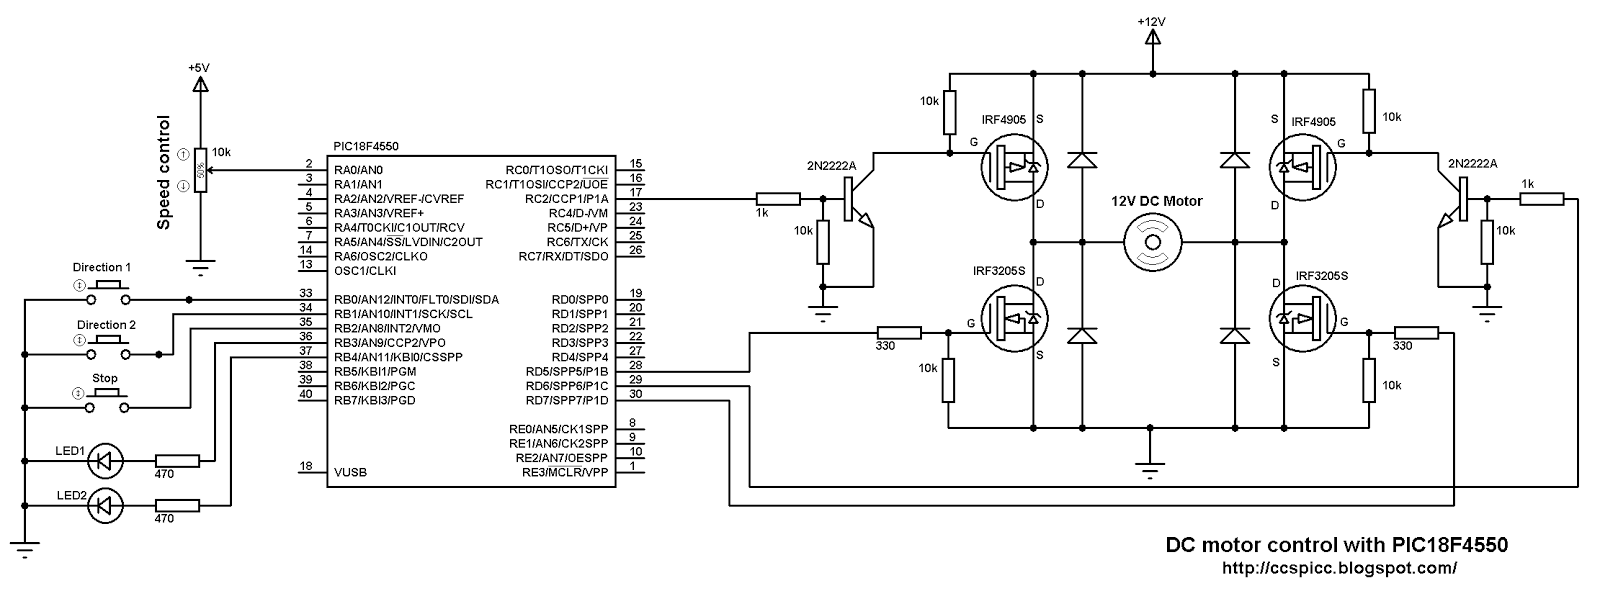 dc motor speed and direction control with pic18f4550 On dc motor direction control